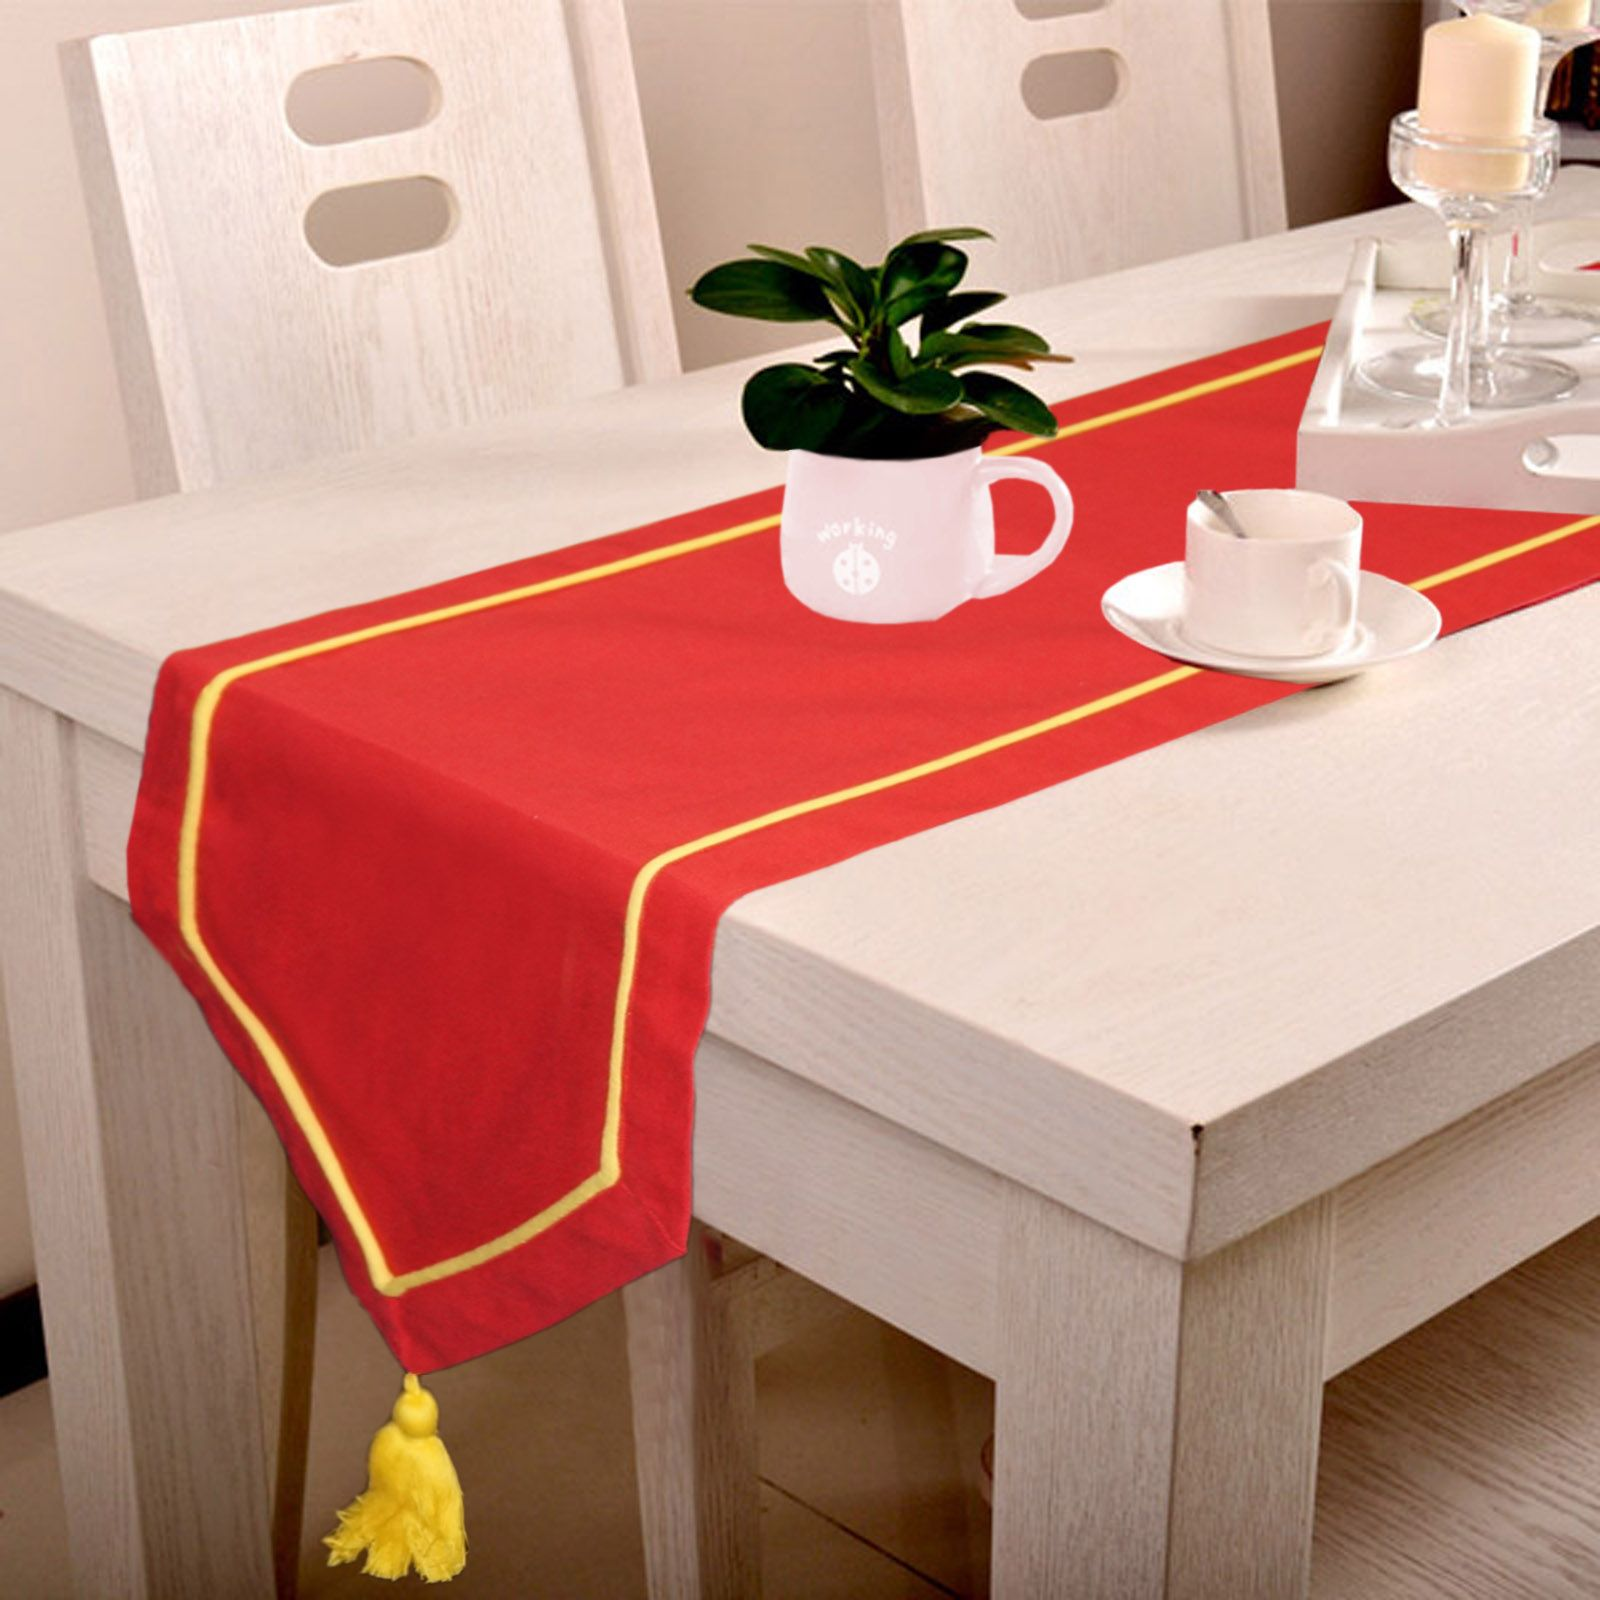 Red Table Runner With Yellow Cord Piping, Namaste Fashion